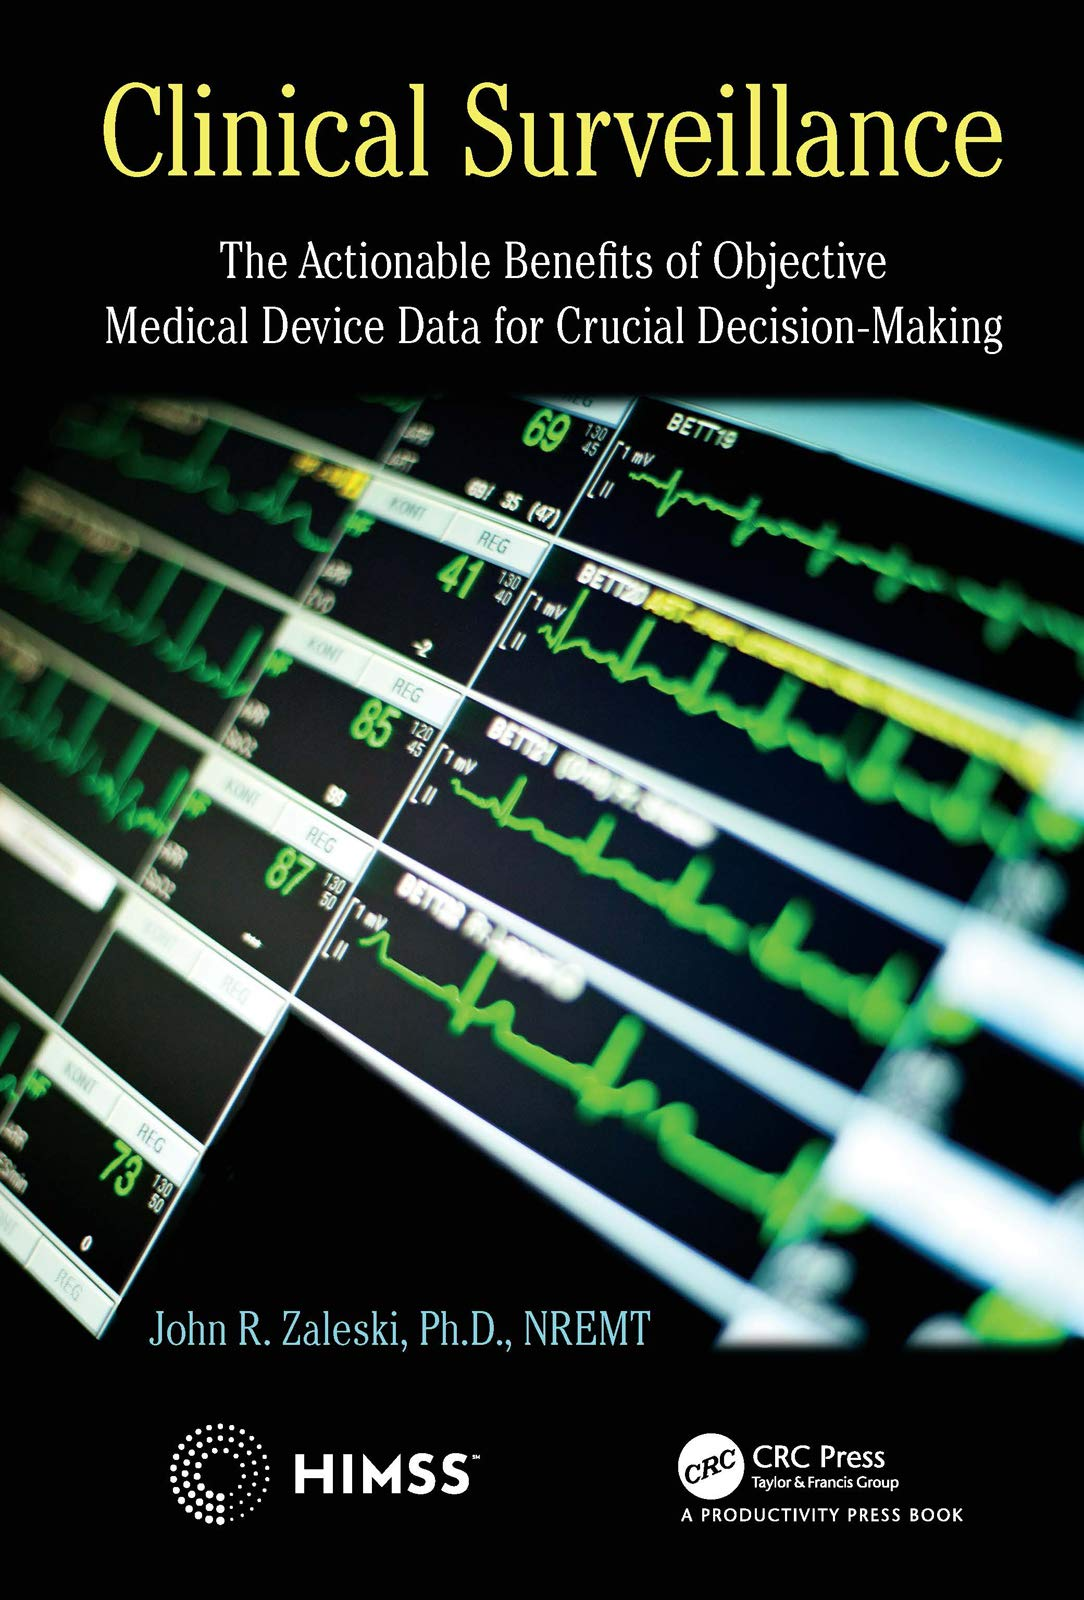 Clinical Surveillance: The Actionable Benefits of Objective Medical Device Data for Critical Decision-Making (HIMSS Book Series)